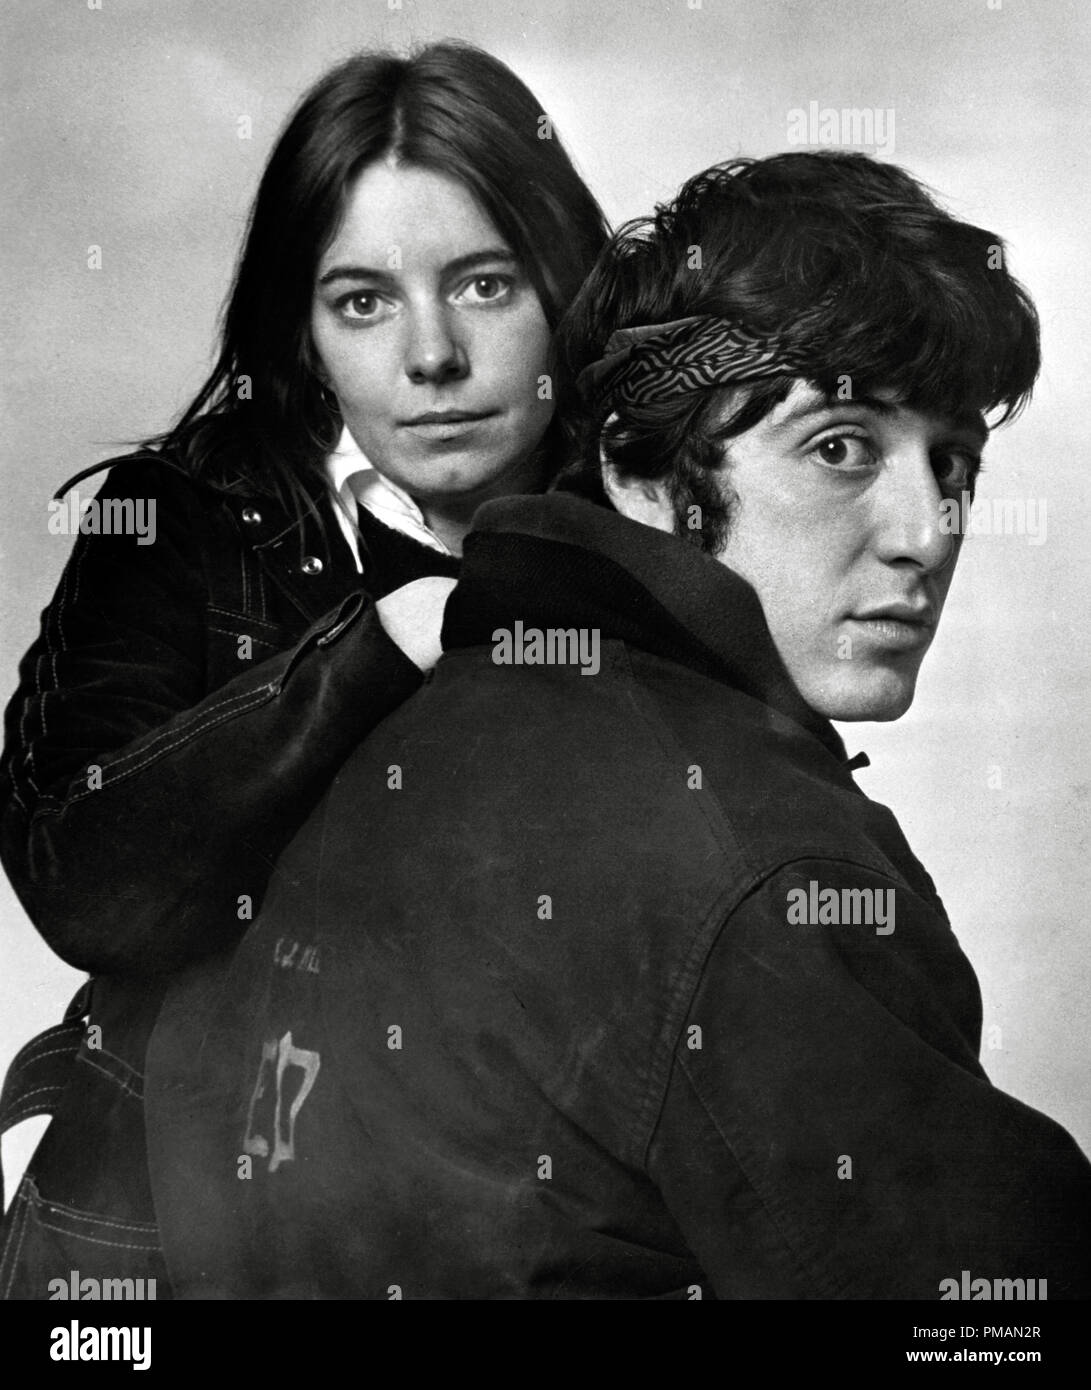 "Film Still/Publicity Still of ""The Panic in Needle Park"" Kitty Winn, Al Pacino 1971 20th Century Fox Cinema Publishers Collection - No Release - For Editorial Use Only.   File Reference # 33505 287THA Stock Photo"